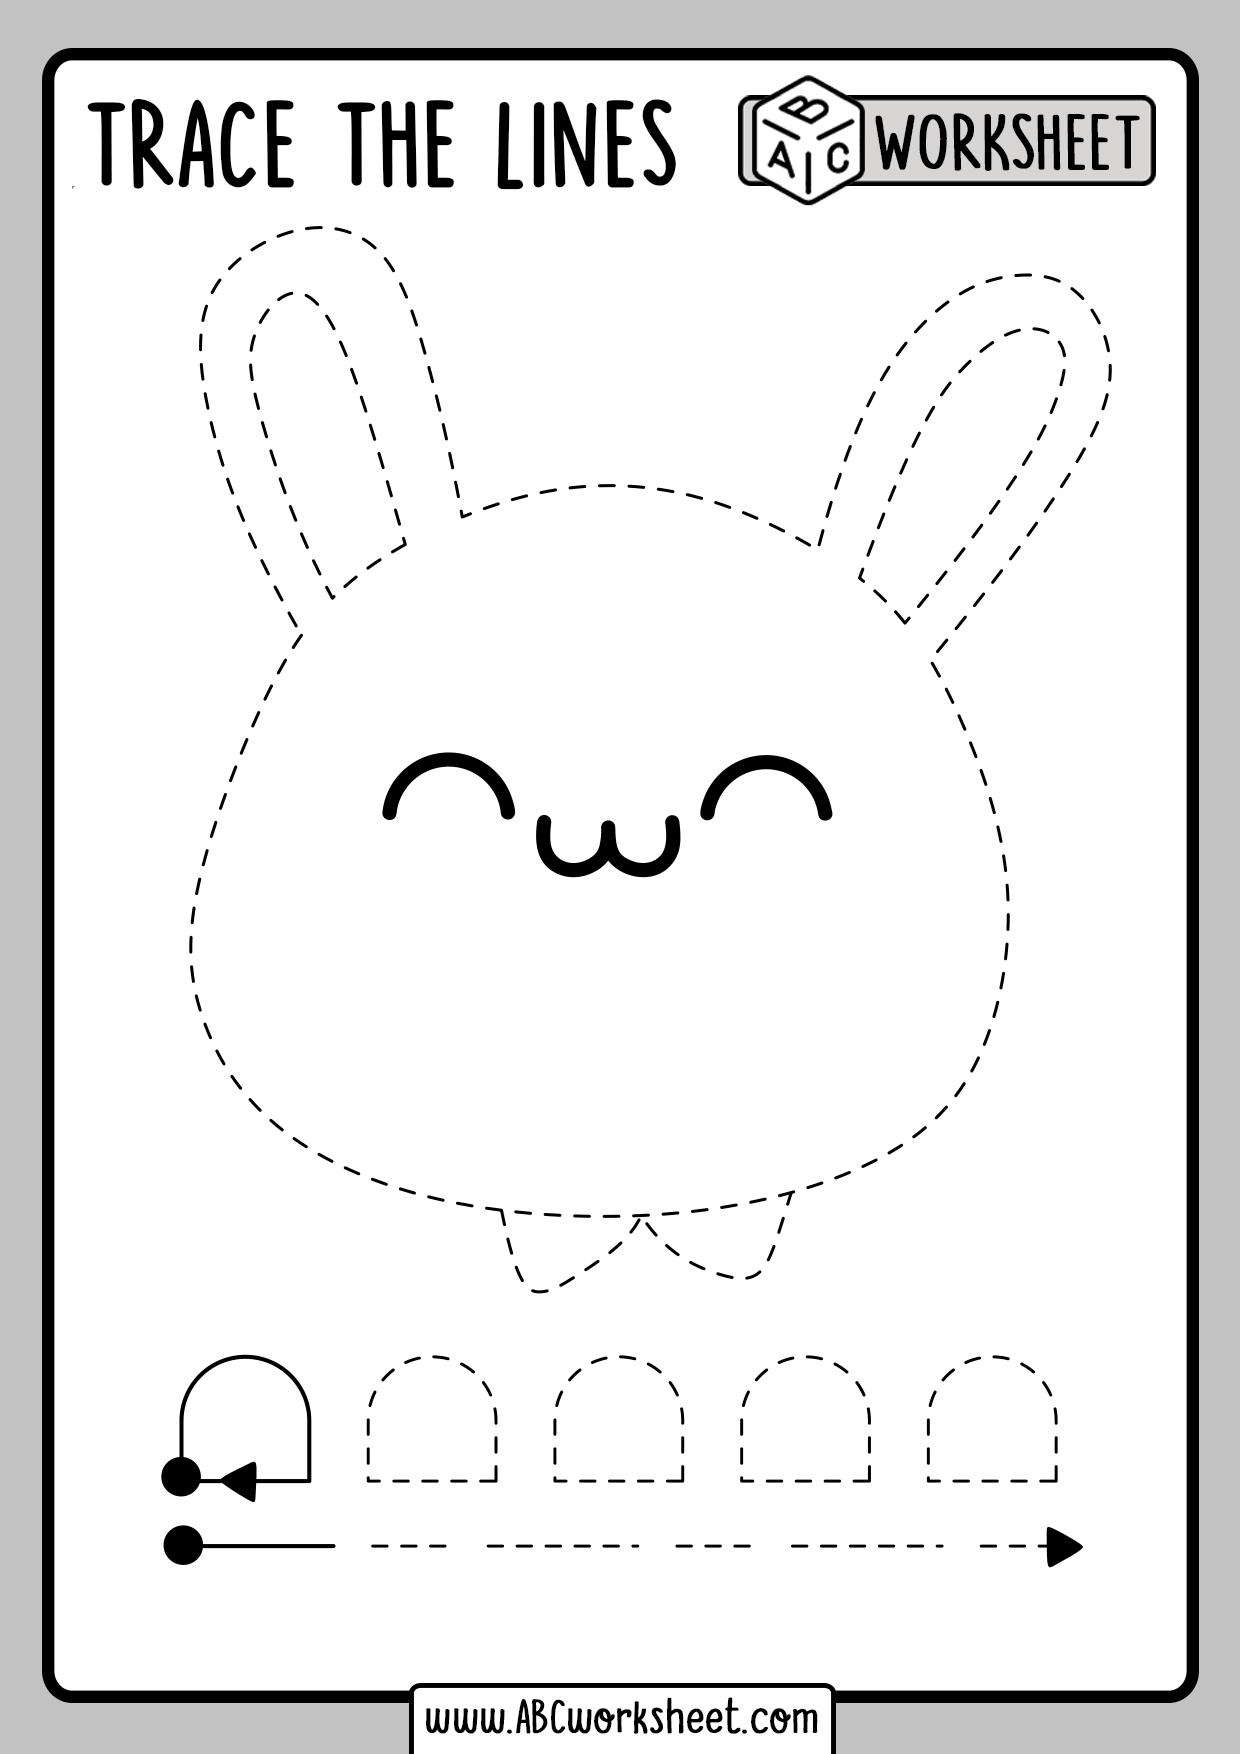 Tracing for 3 Years old - ABC Worksheet